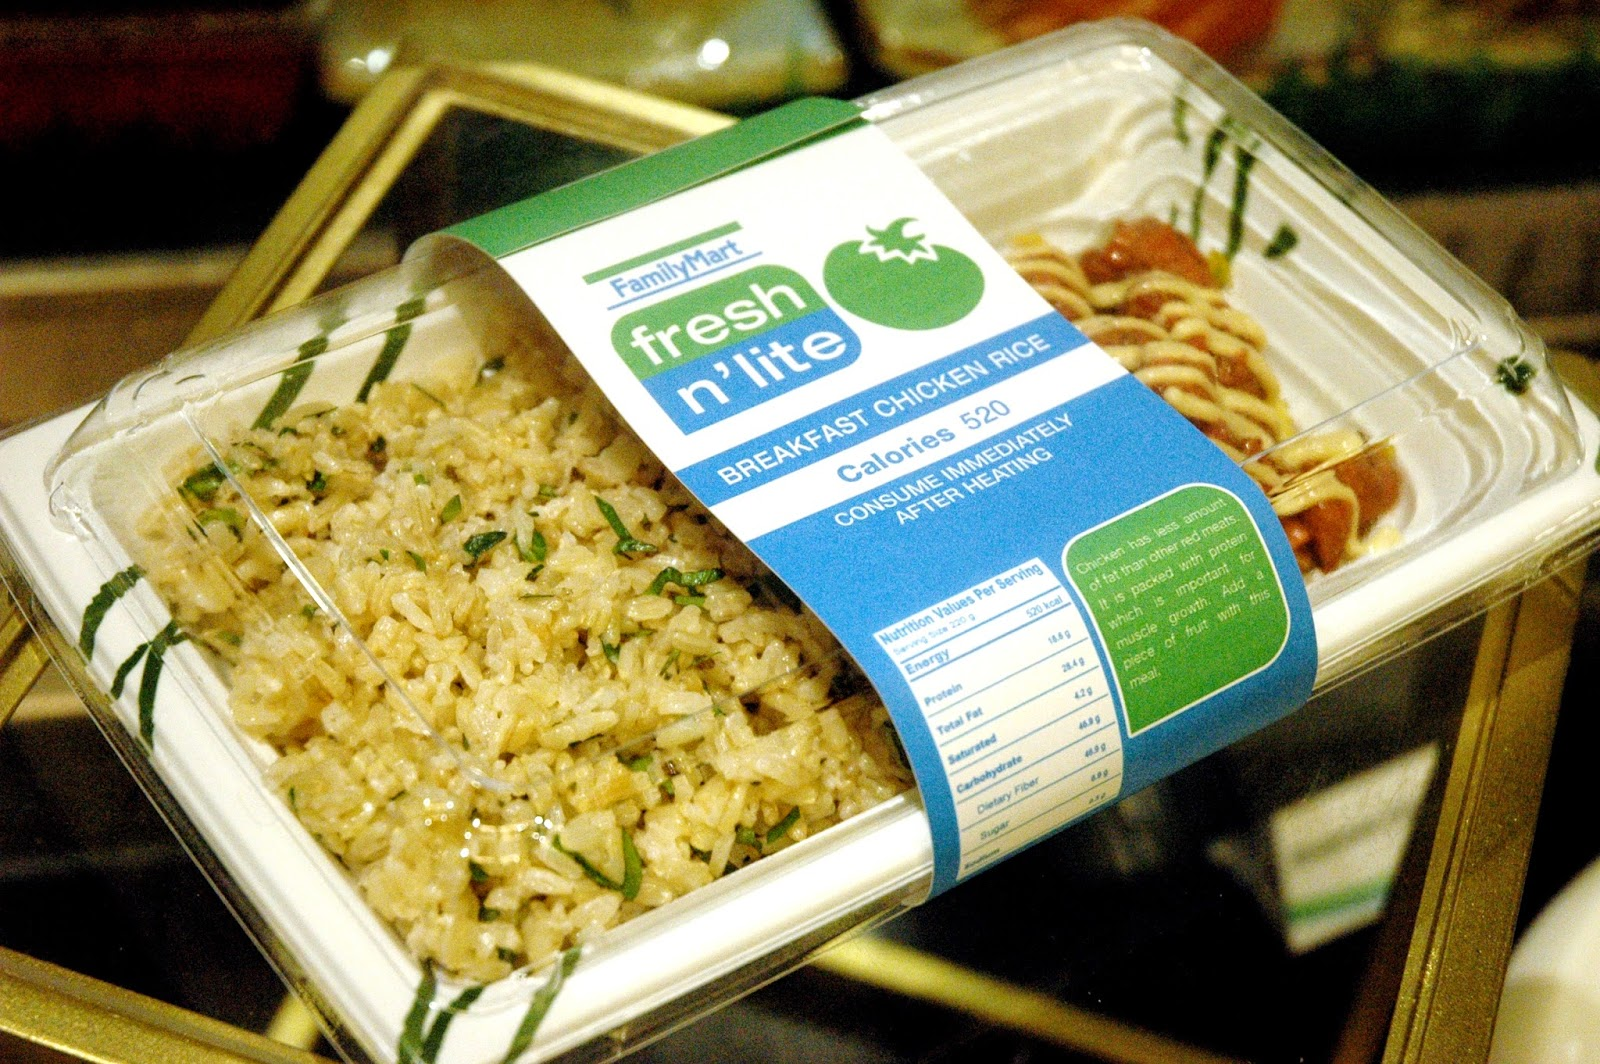 Dude for food healthy meals on the go with familymarts fresh n lite healthy meals on the go with familymarts fresh n lite forumfinder Image collections